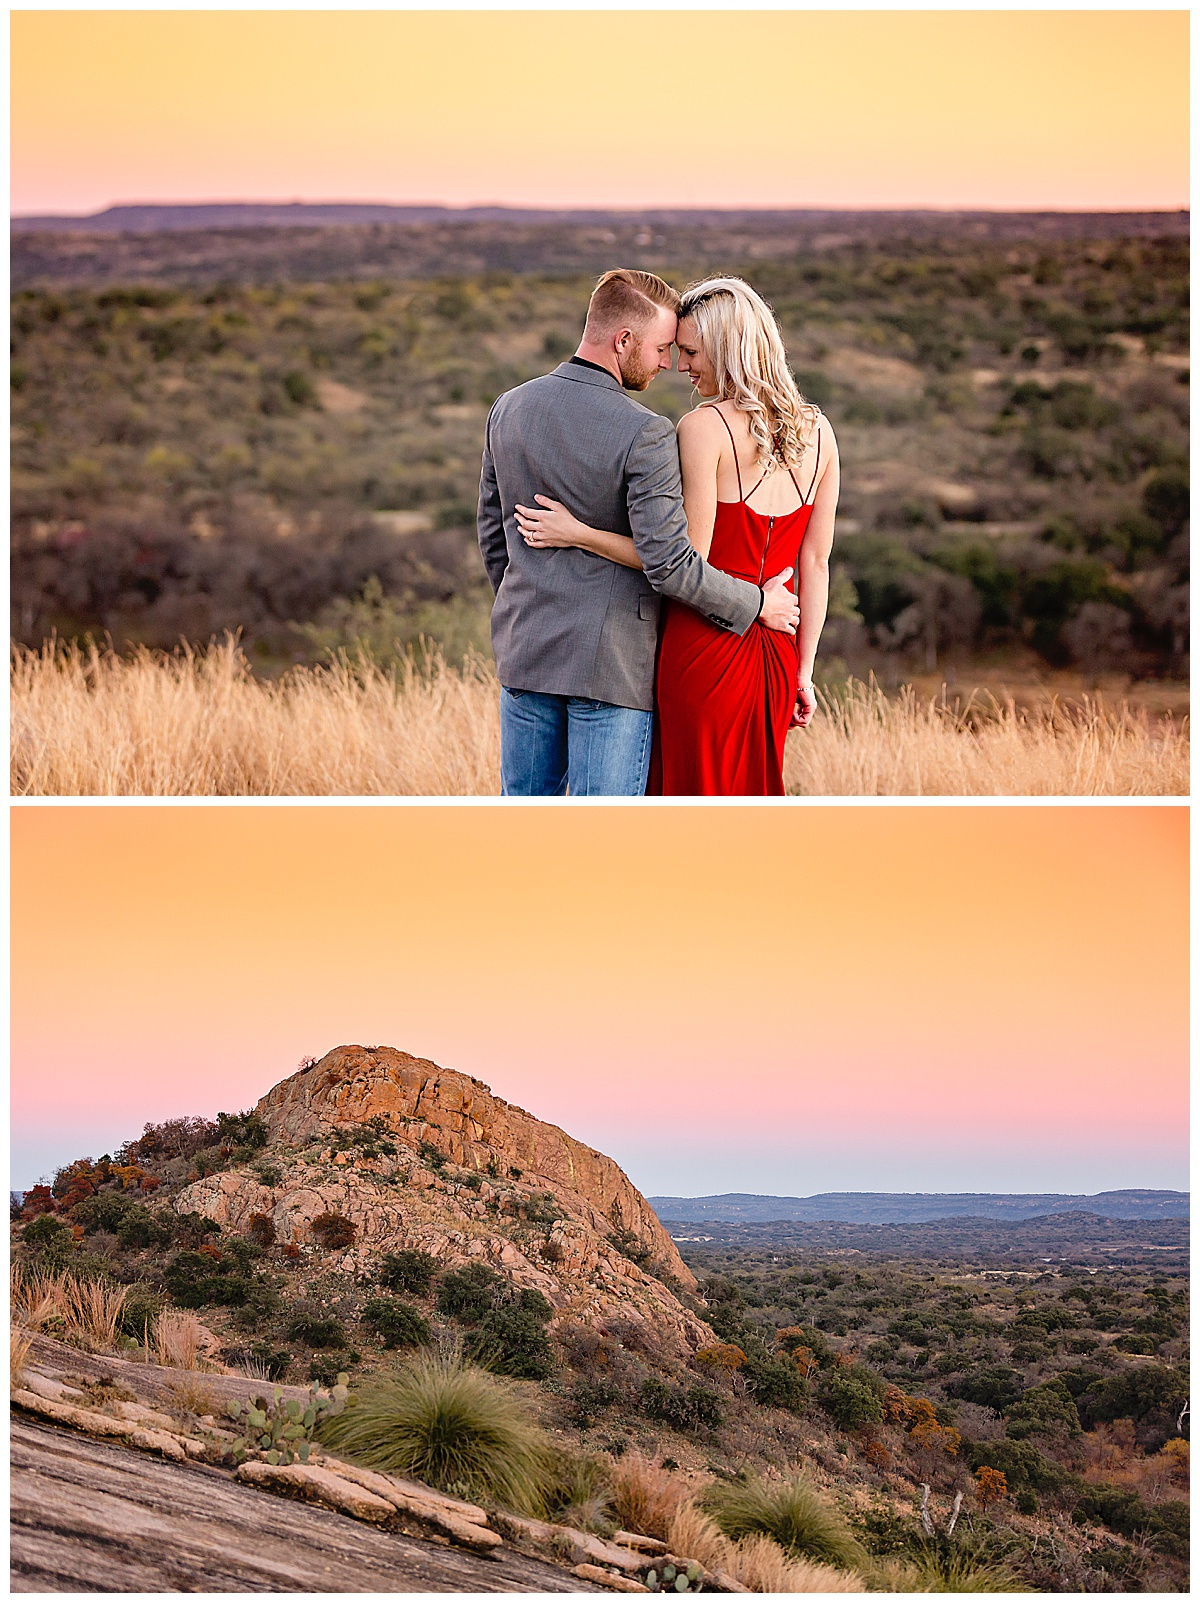 South-Texas-Wedding-Photographer-Engagement-Photos-Enchanted-Rock-Fredericksburg-Sunset-Couples-Carly-Barton-Photography_0006.jpg